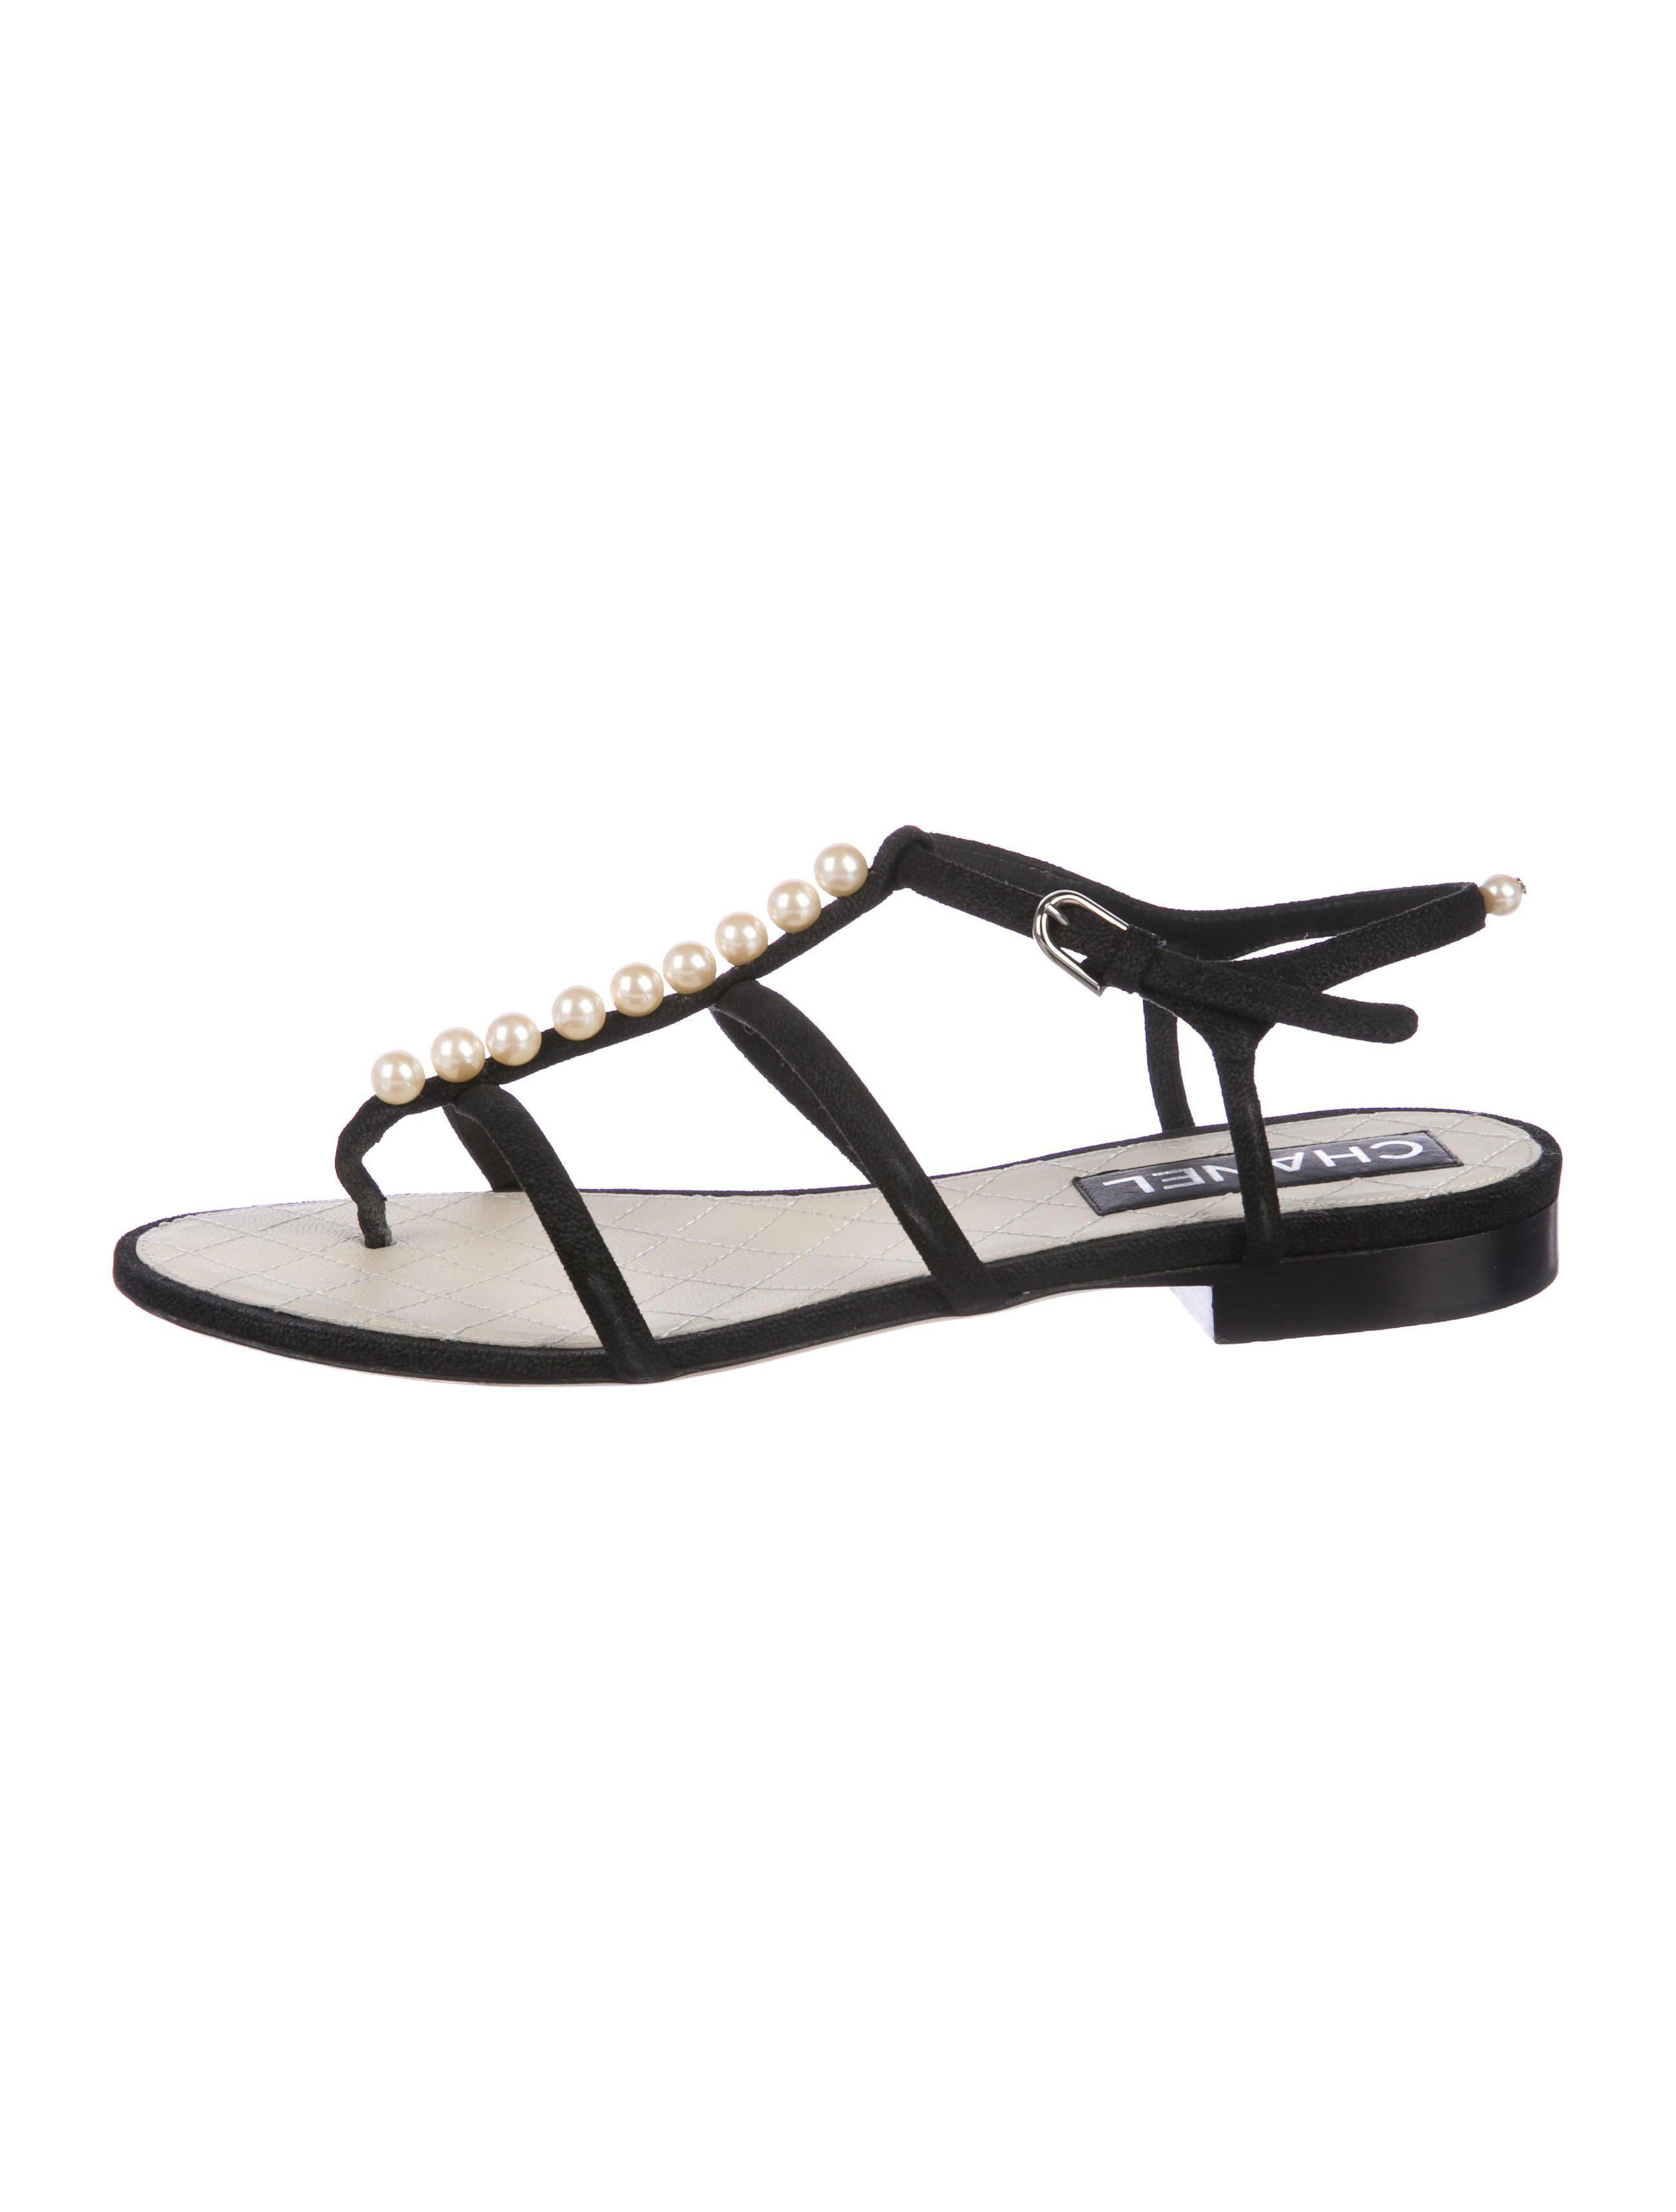 8a592435b136 Lyst - Chanel Embellished Thong Sandals Black in Metallic